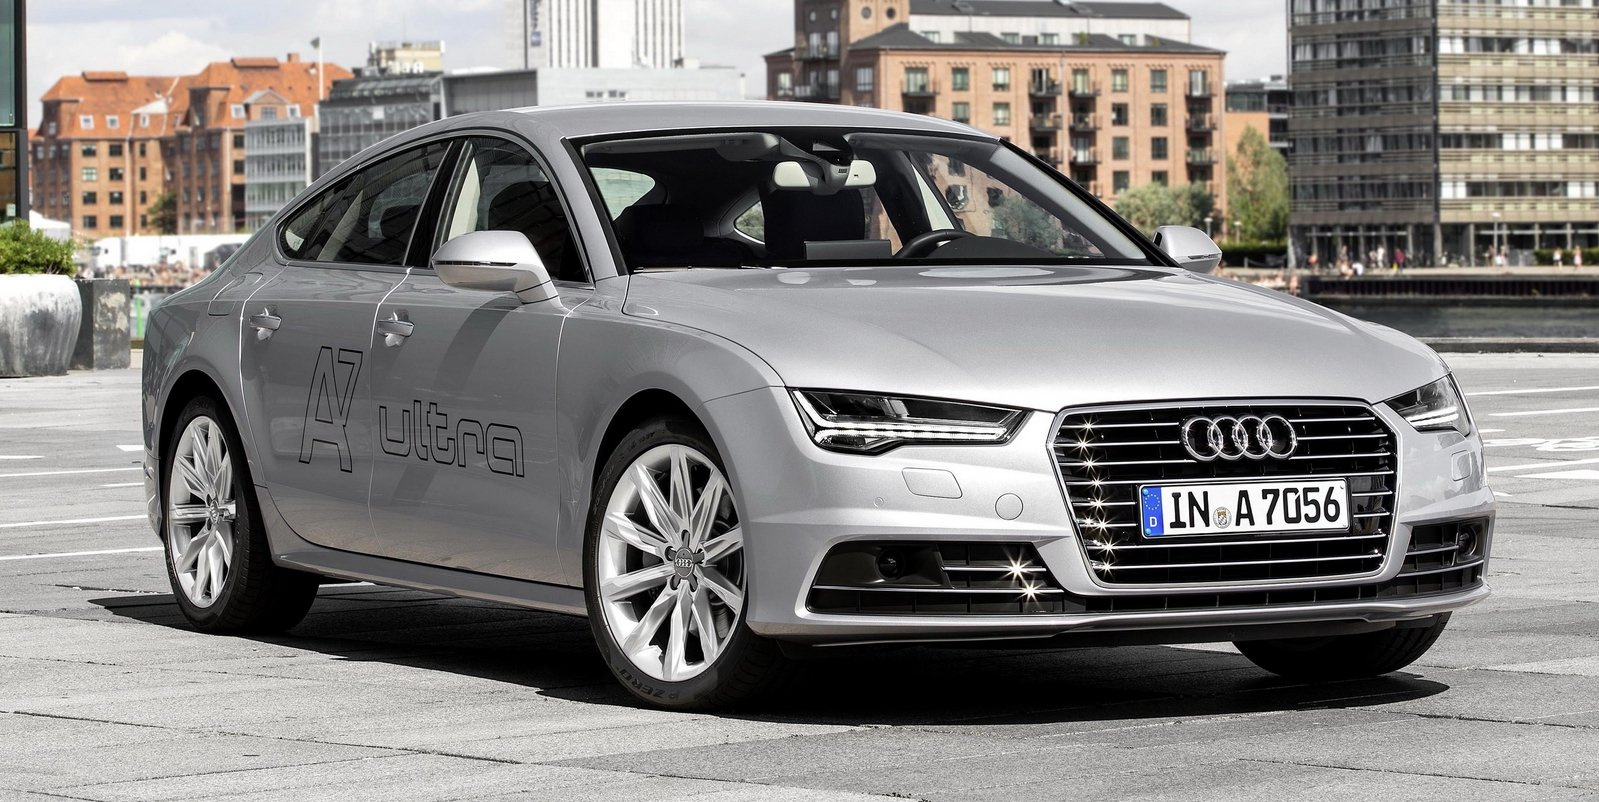 2015 audi a7 sportback 3 0 tdi ultra review top speed. Black Bedroom Furniture Sets. Home Design Ideas